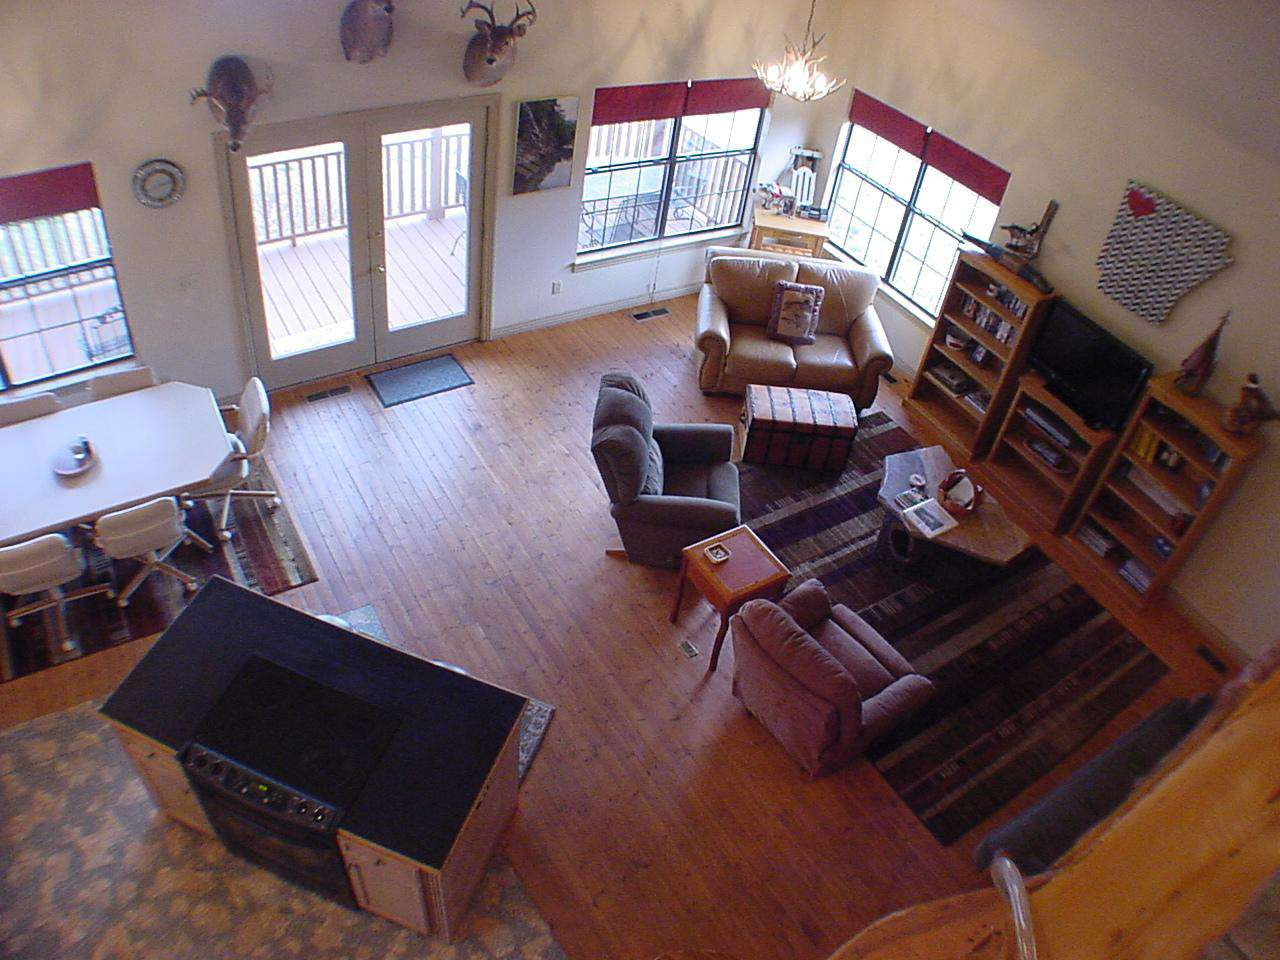 Living room from upstairs landing